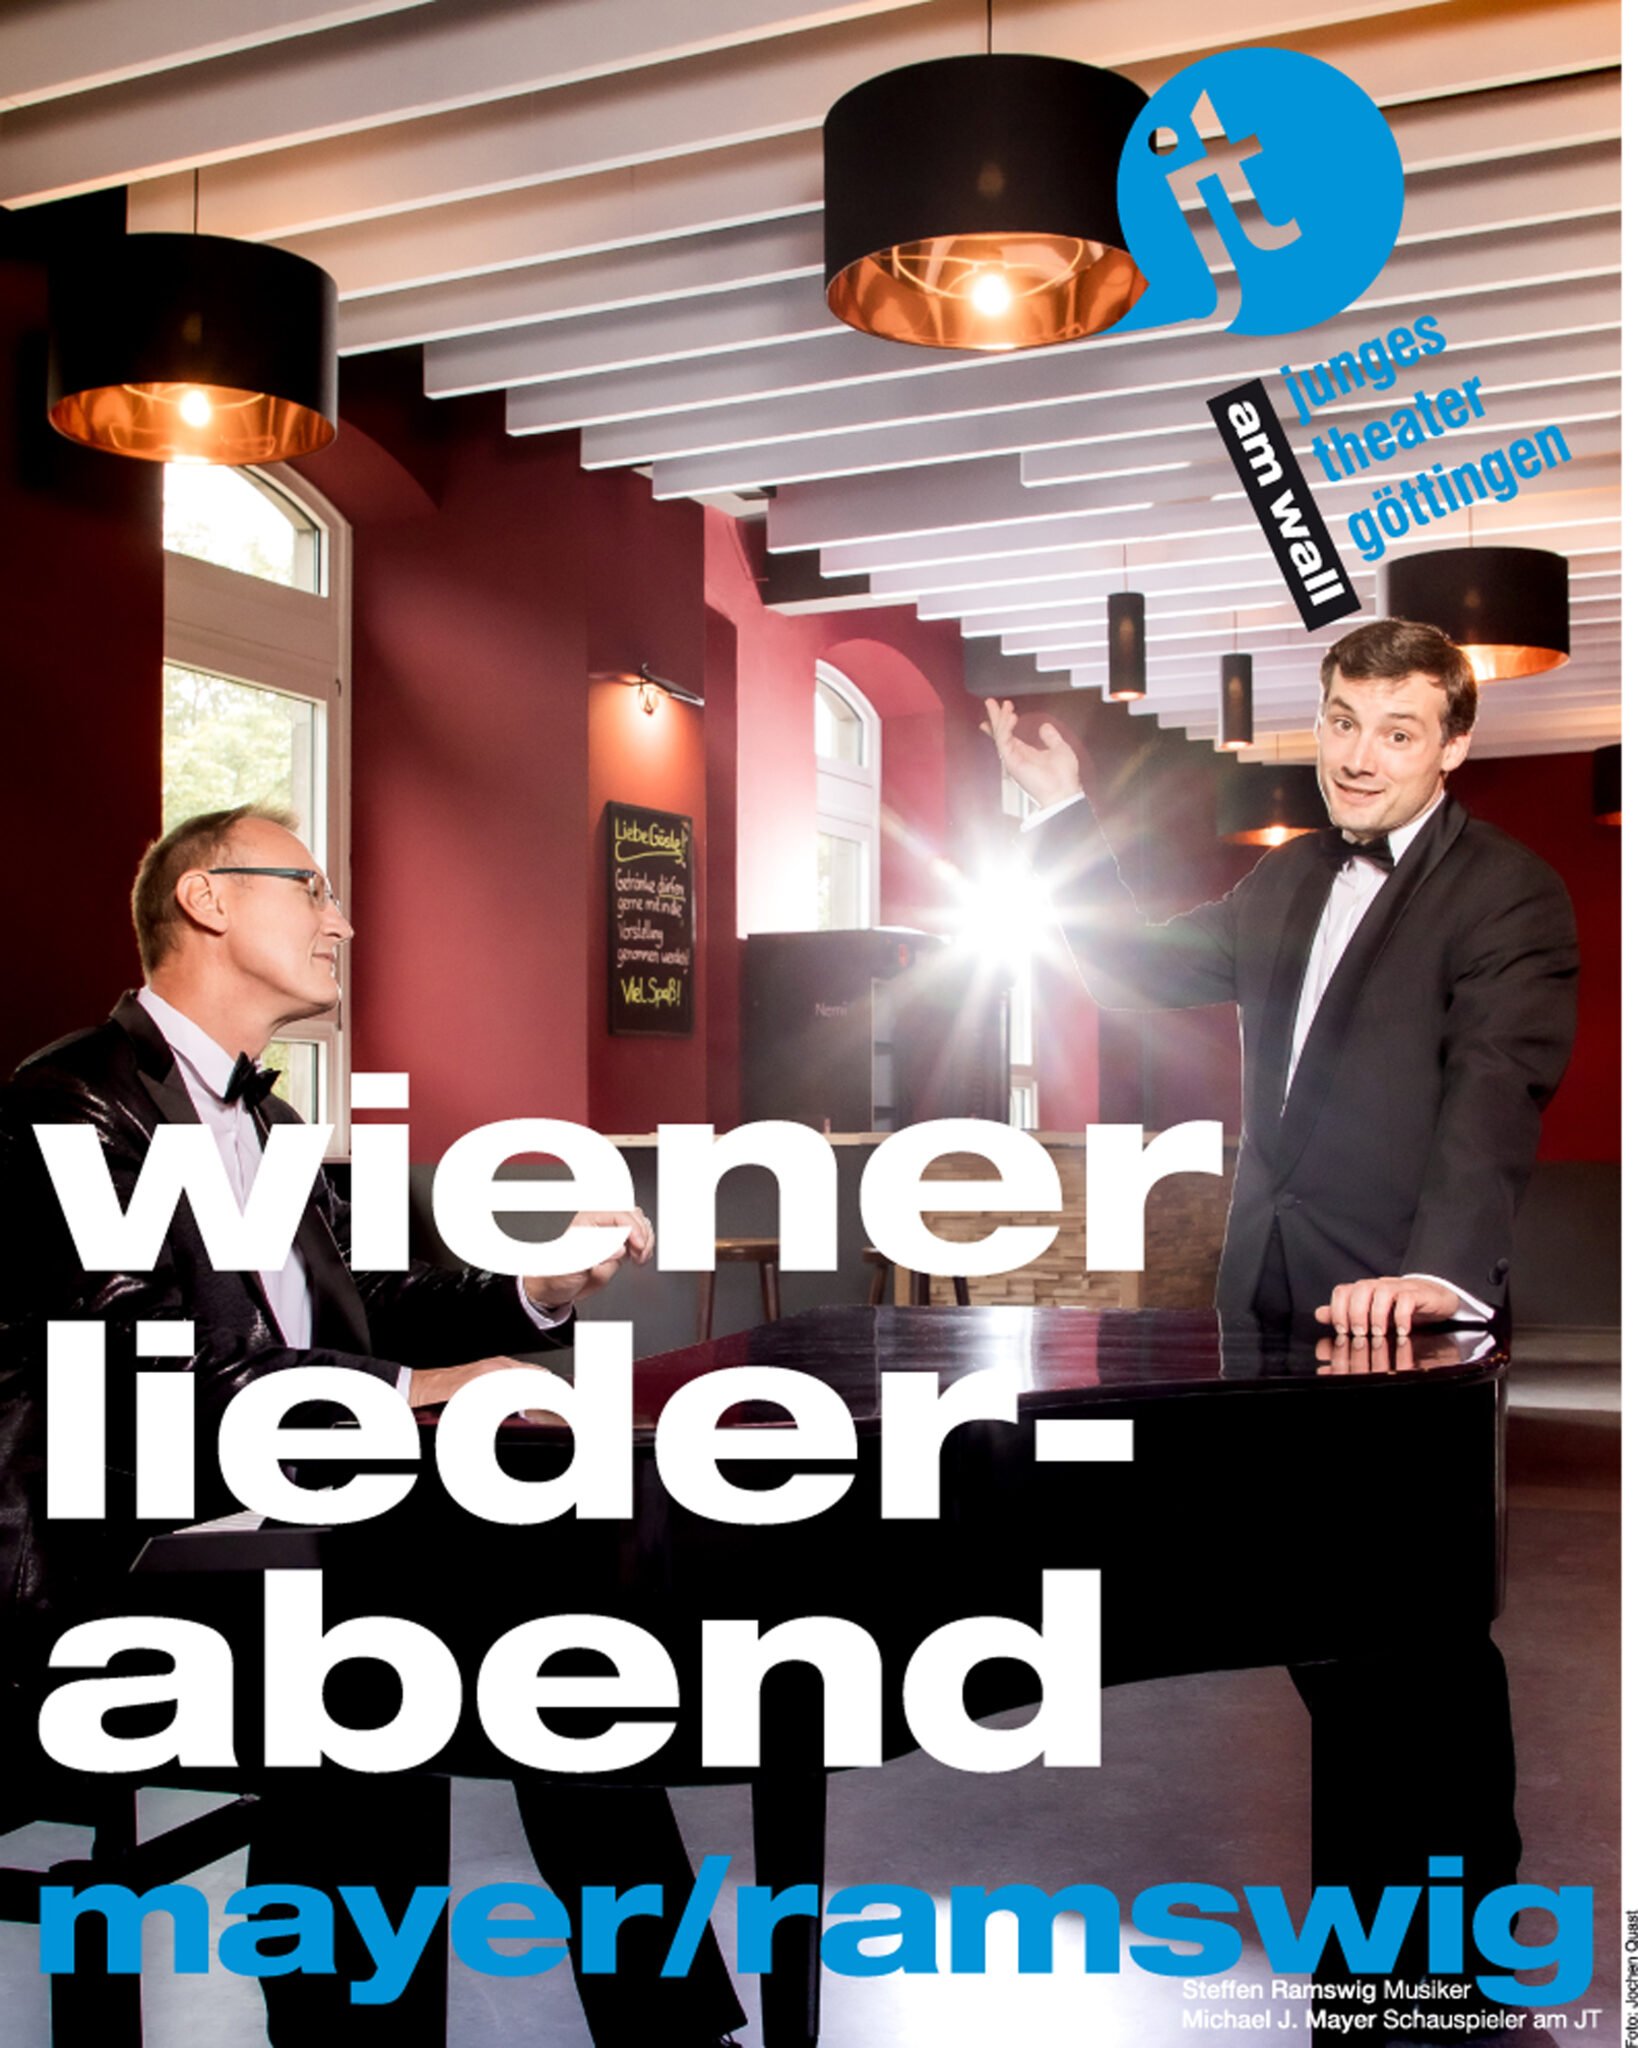 https://www.junges-theater.de/wp-content/uploads/2020/07/Plakat_WienerLiederabend-scaled.jpg